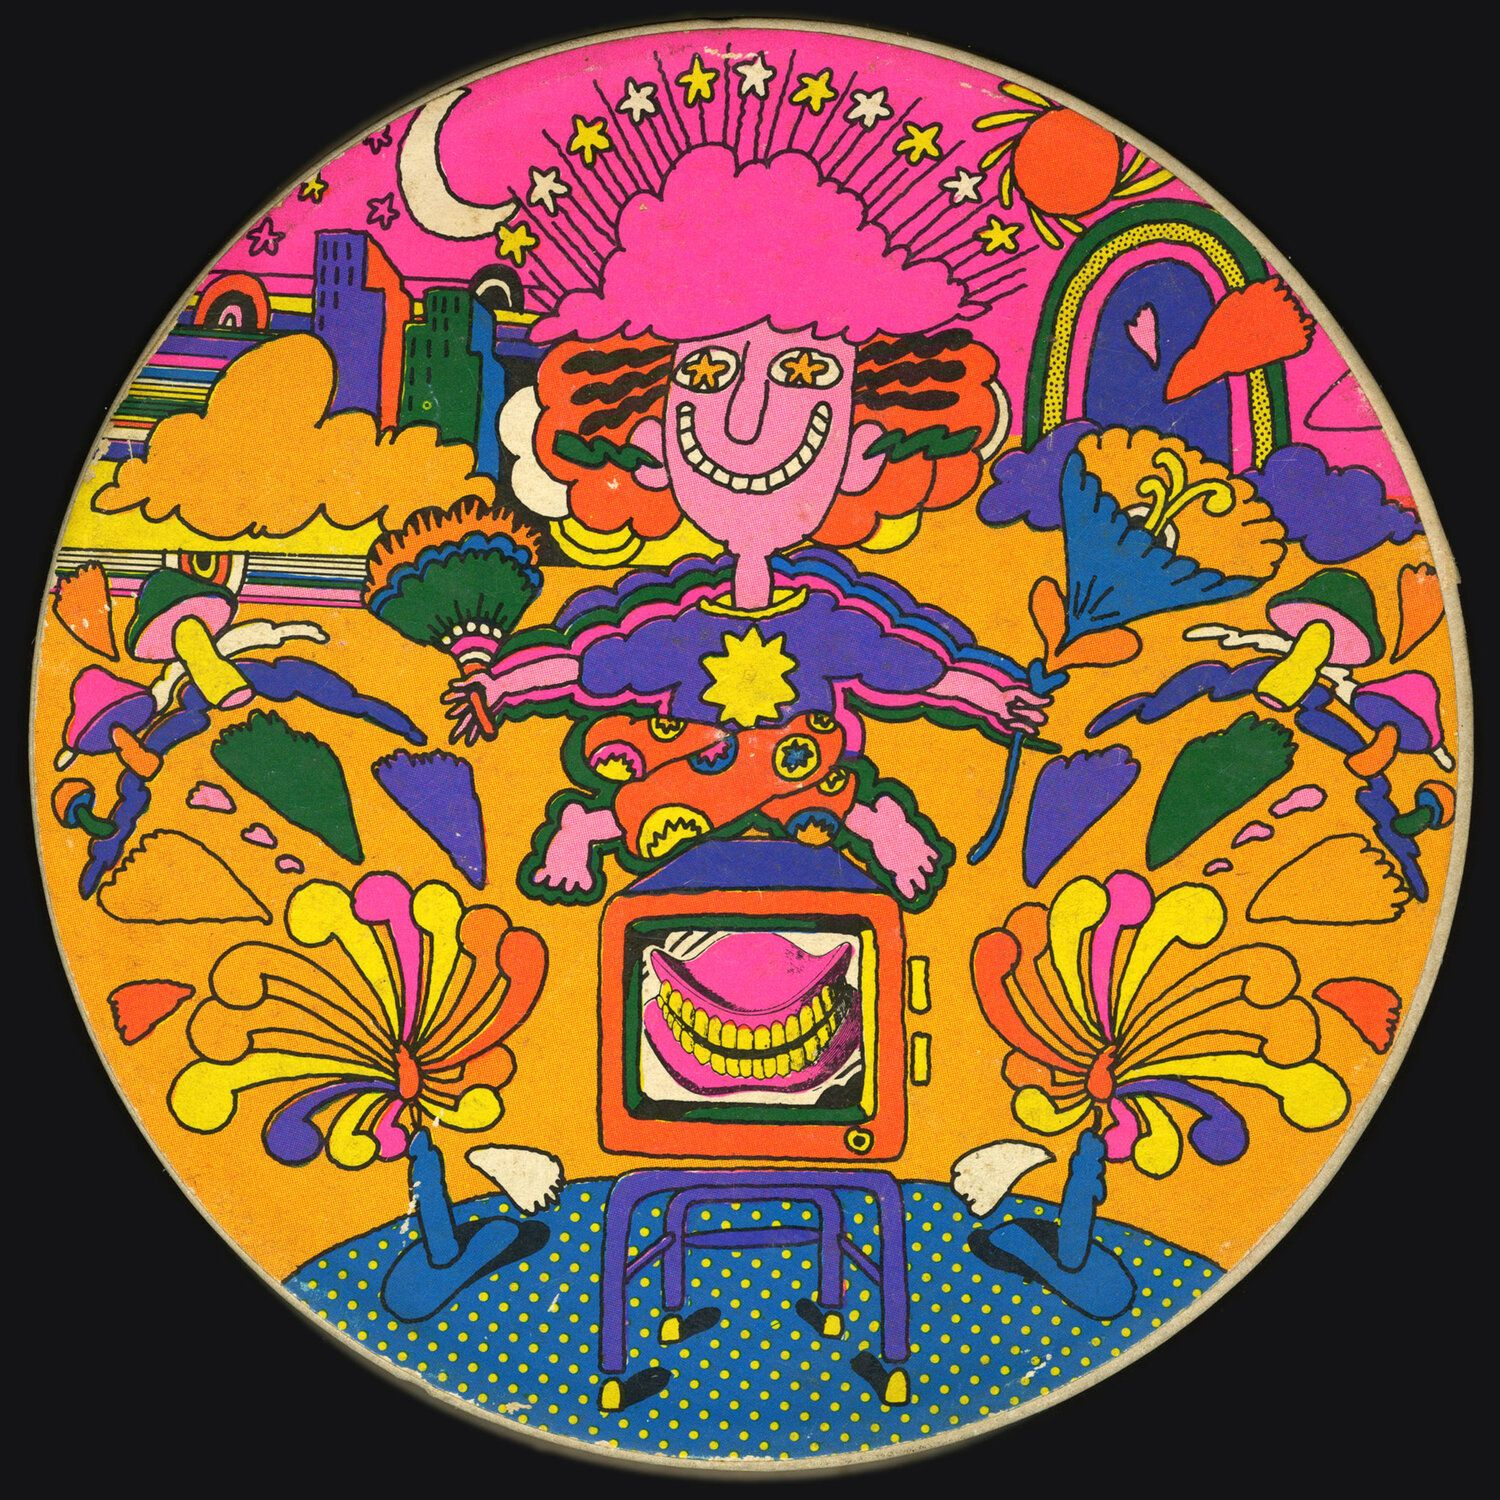 Mother Goose 2a Jpg In 2020 Psychedelic Typography Puzzle Art Psychedelic